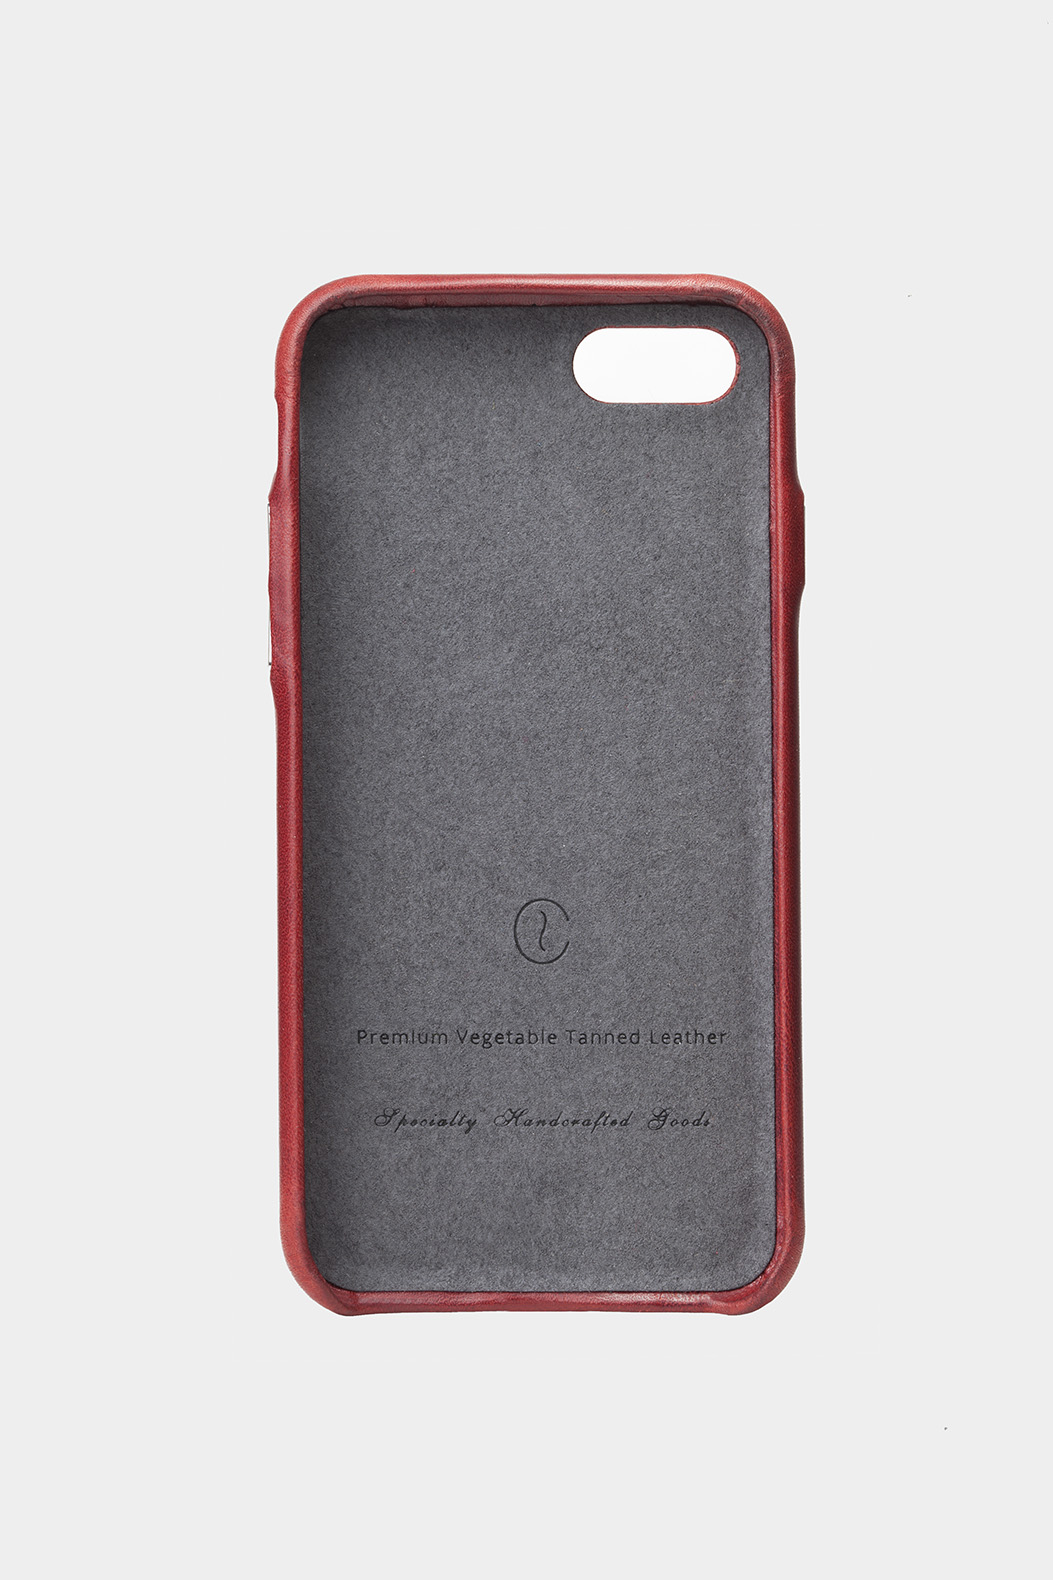 iphone leather case red